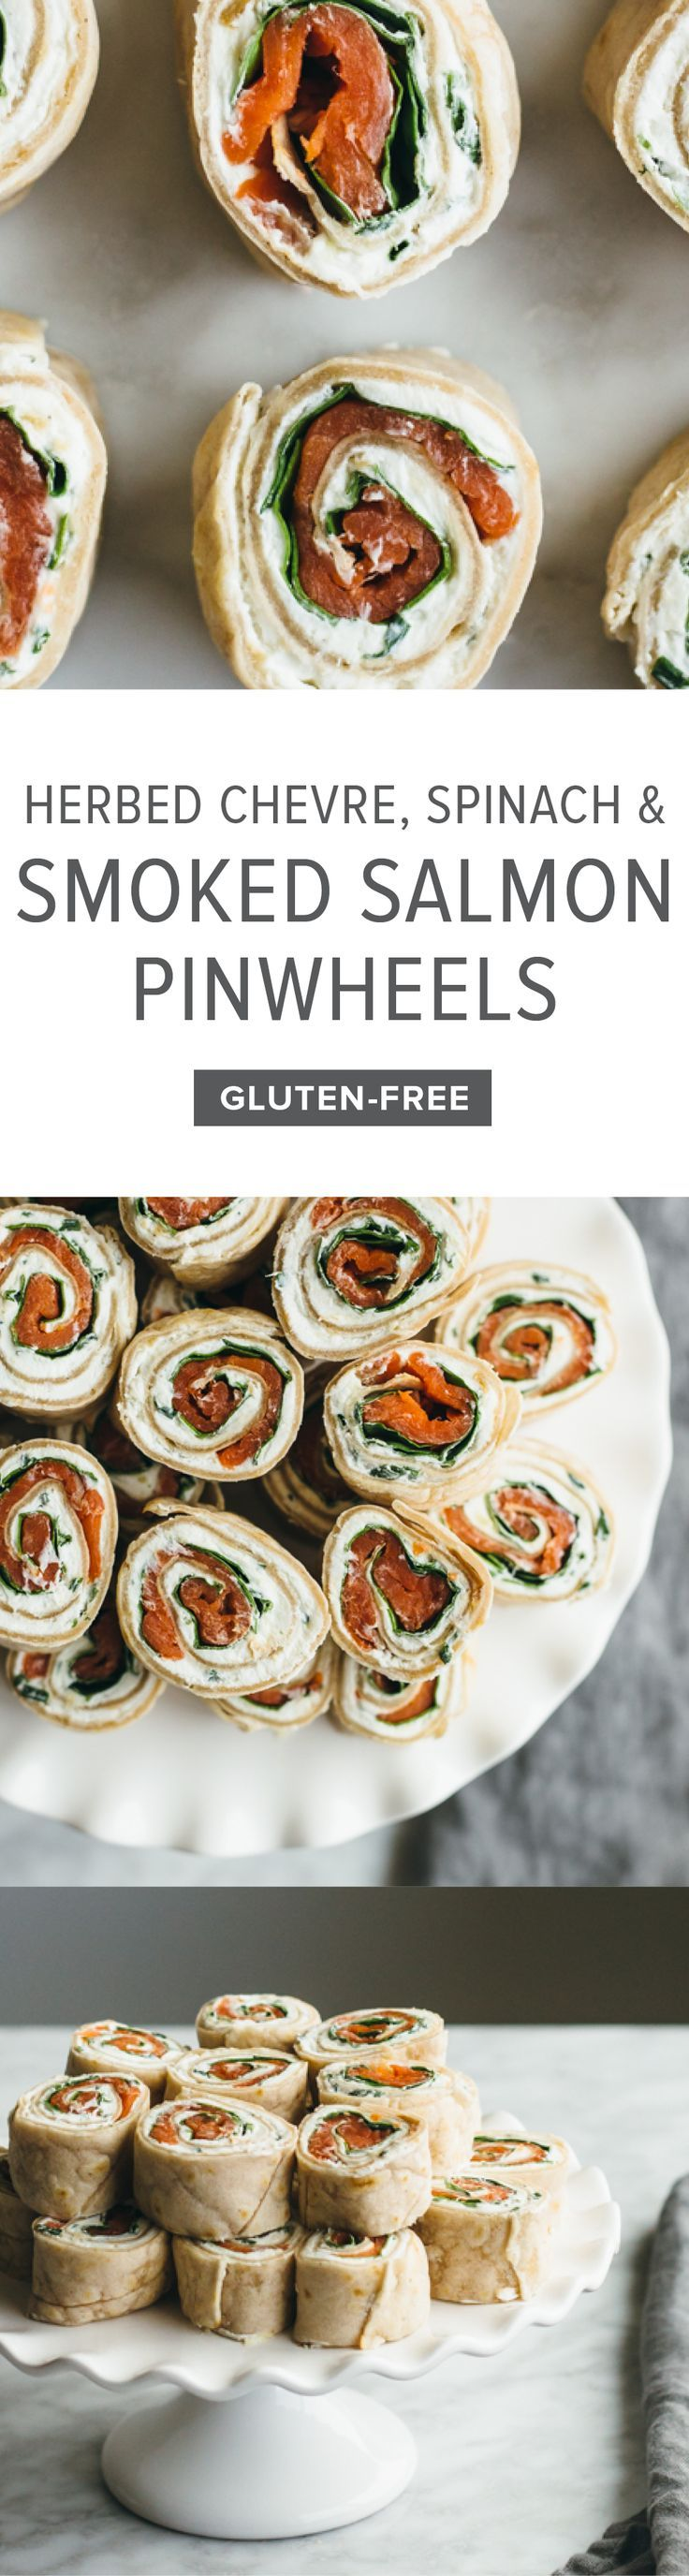 The 25 best salmon pinwheels ideas on pinterest herbed chevre spinach and smoked salmon pinwheel ccuart Image collections